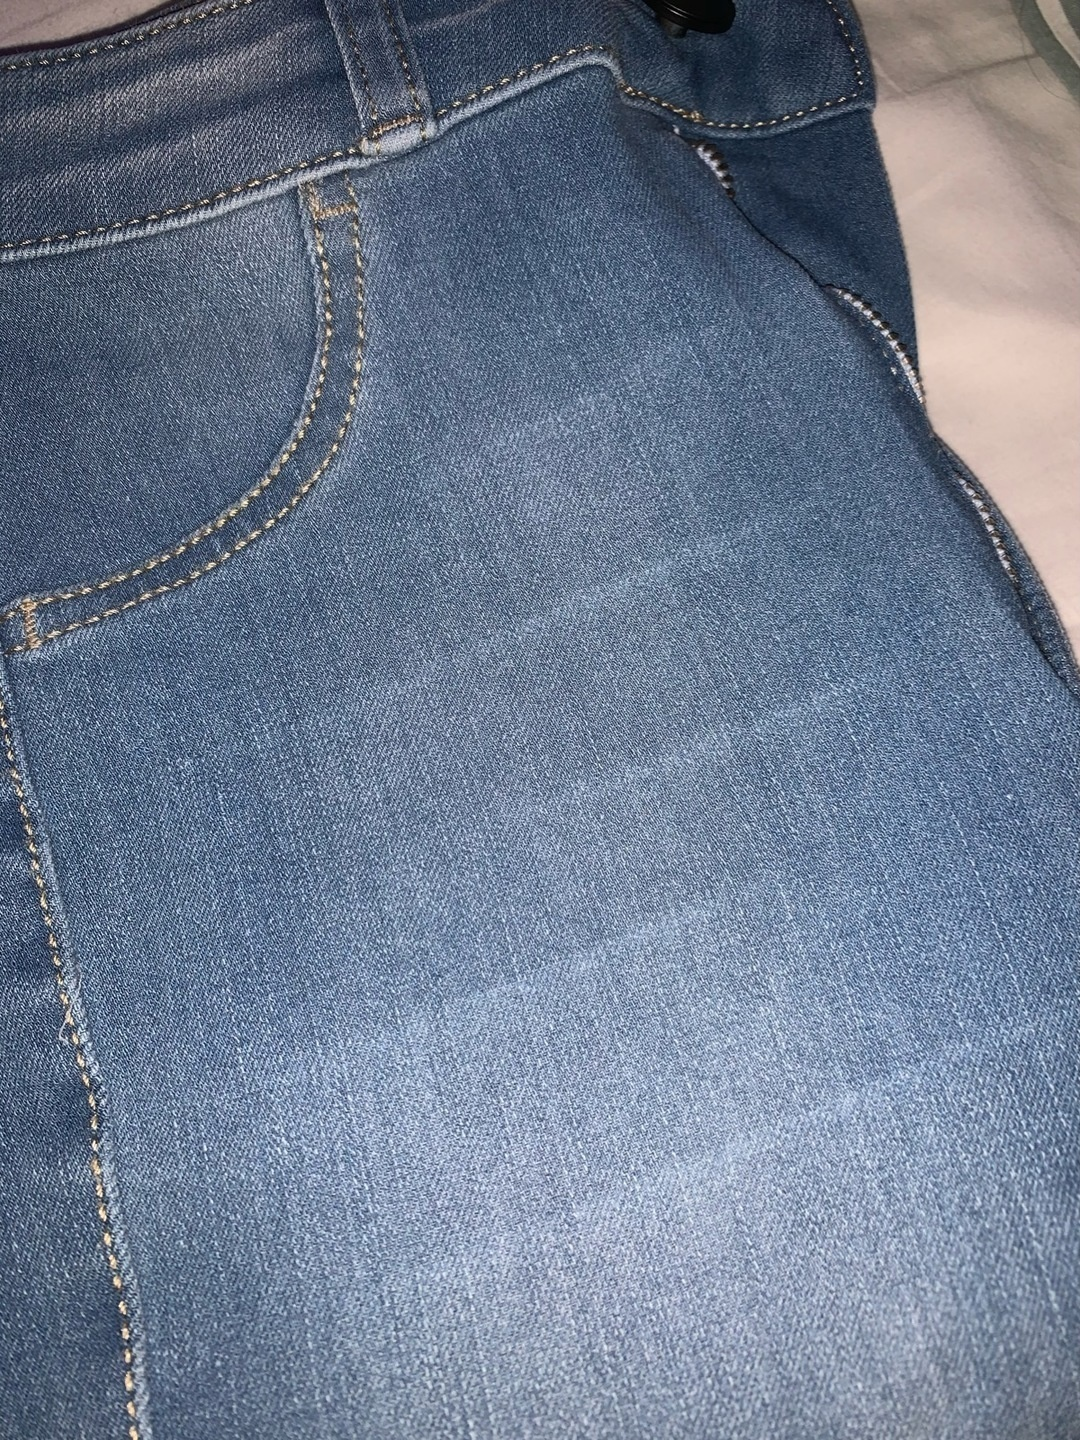 Women's trousers & jeans - FITJEANS photo 2